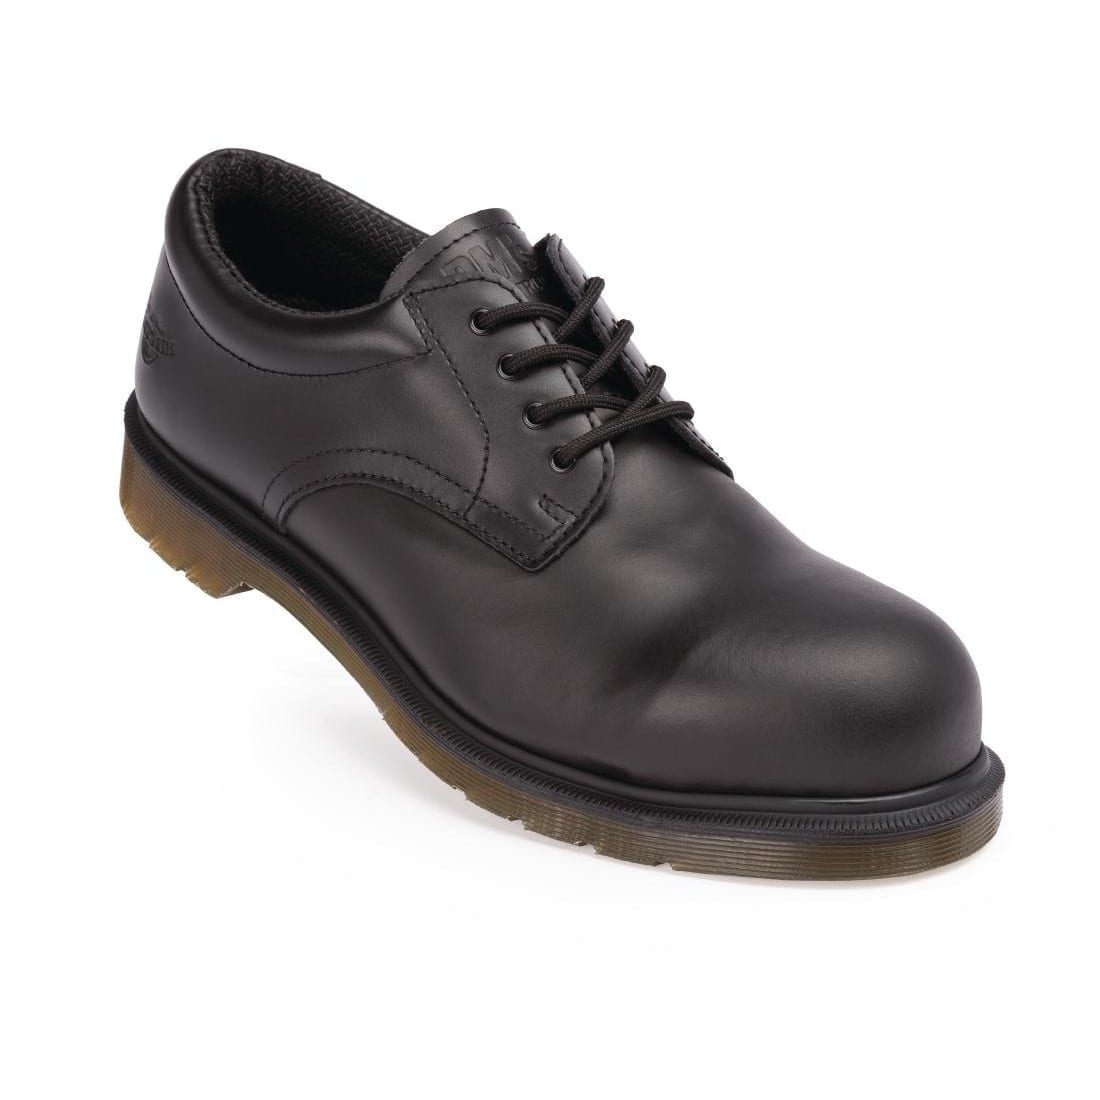 Dr Martens Classic Black Icon Safety Shoe - Size 38-0